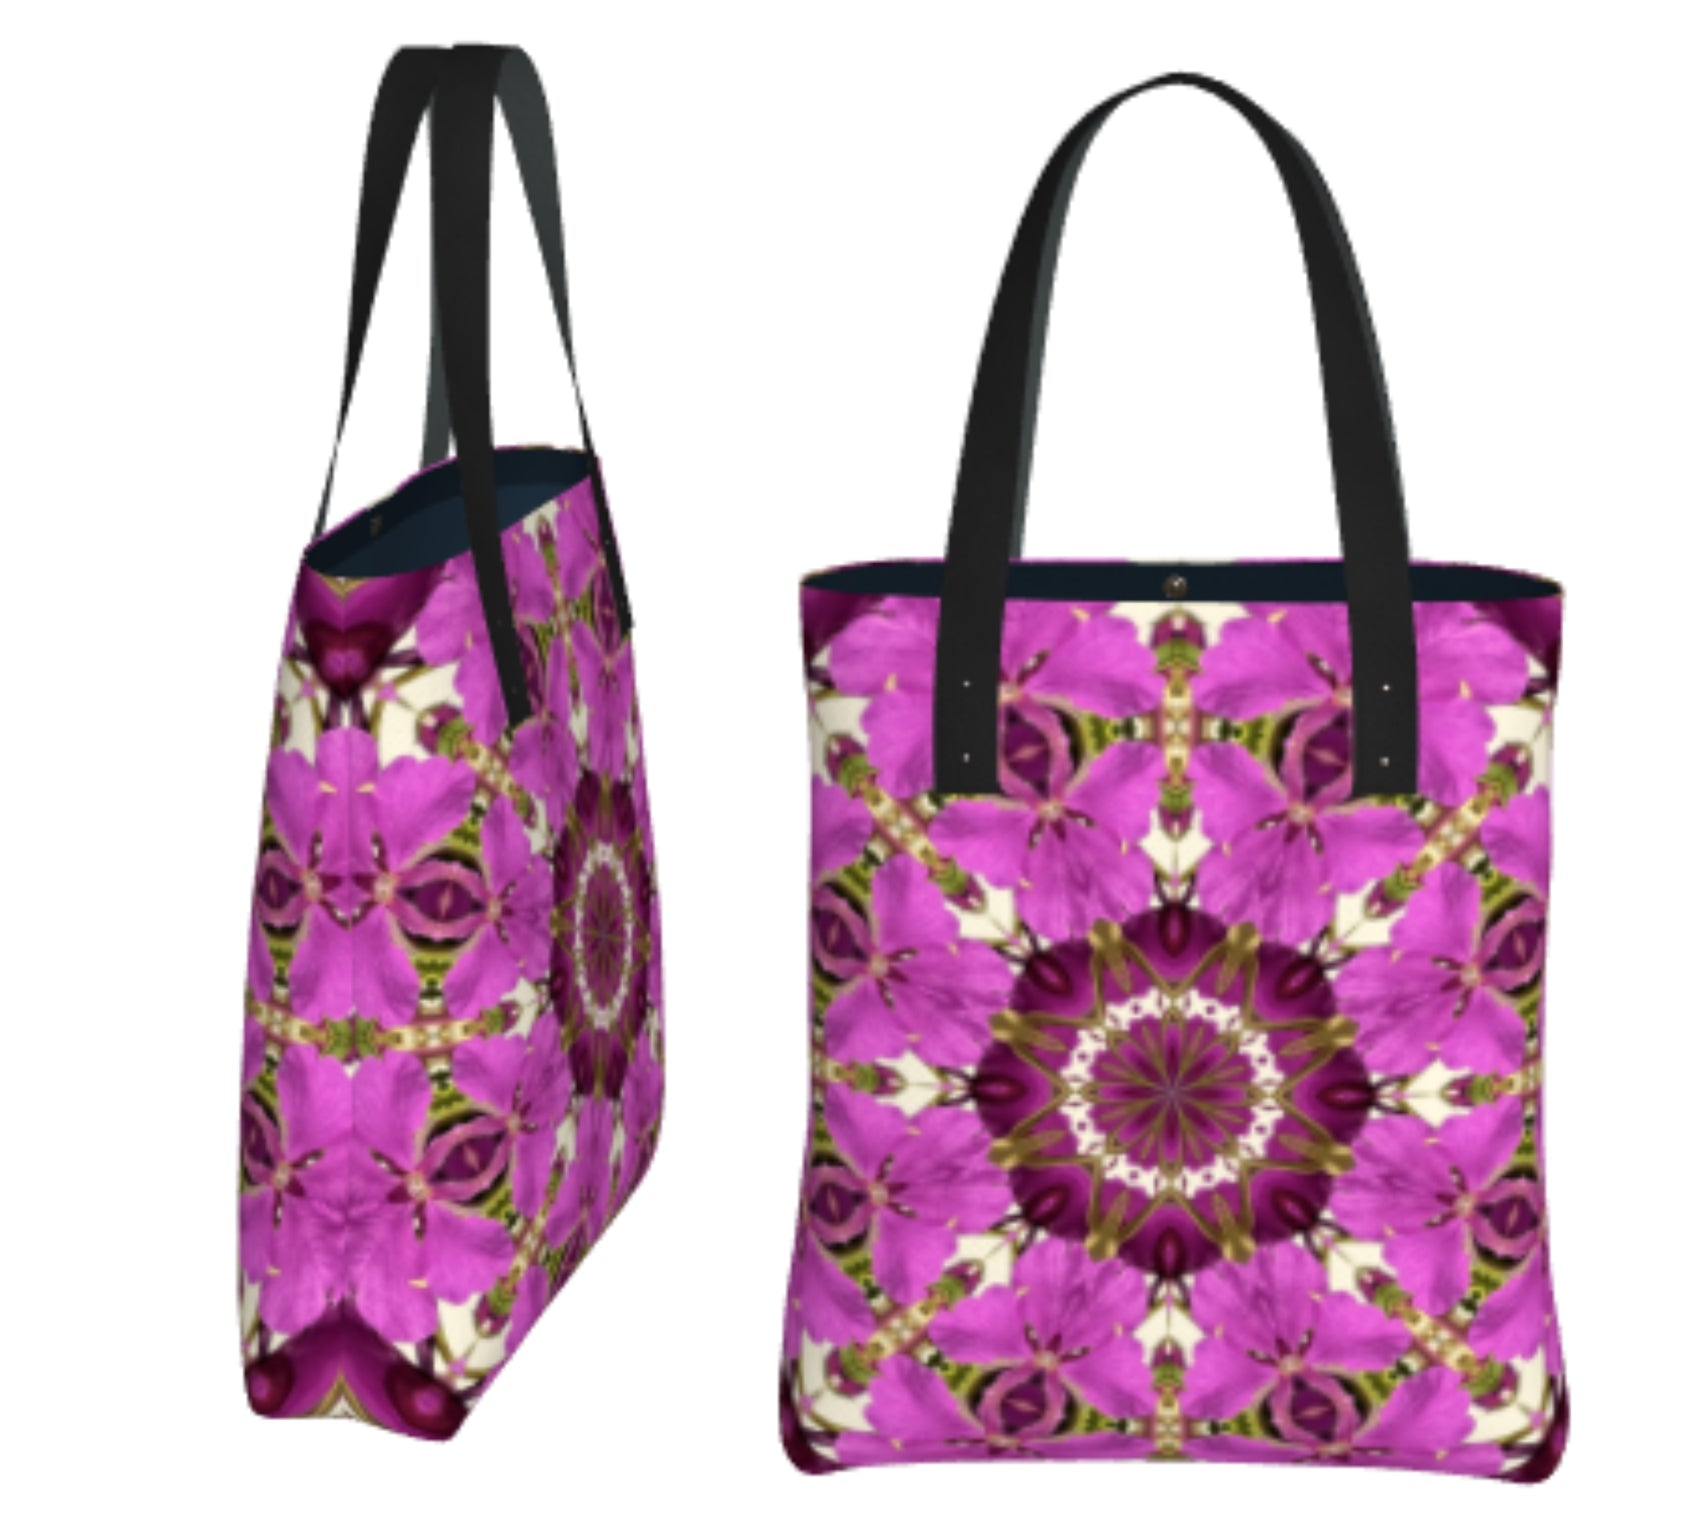 Spring Floral Mandala Shoulder Bag in Tough Poly Fabric